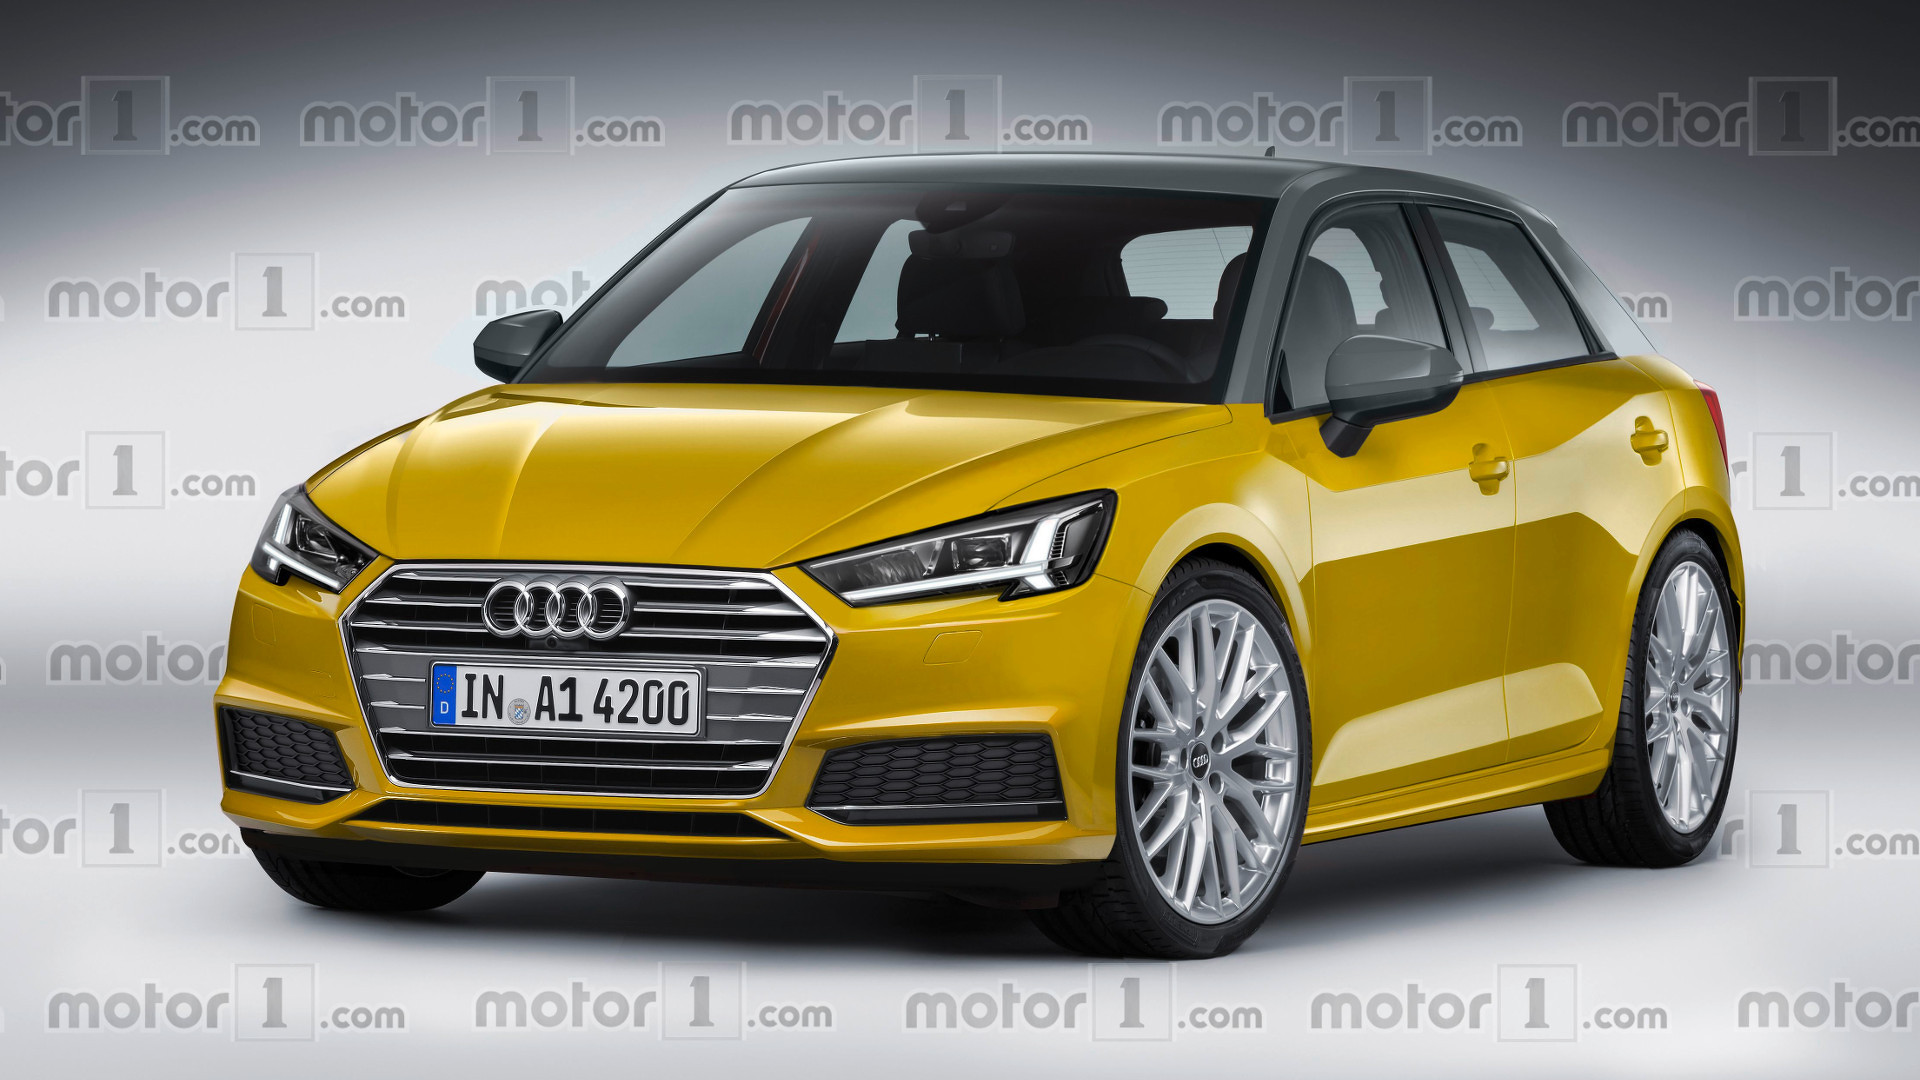 Audi A1 For Sale Usa >> New Audi A1 speculatively rendered